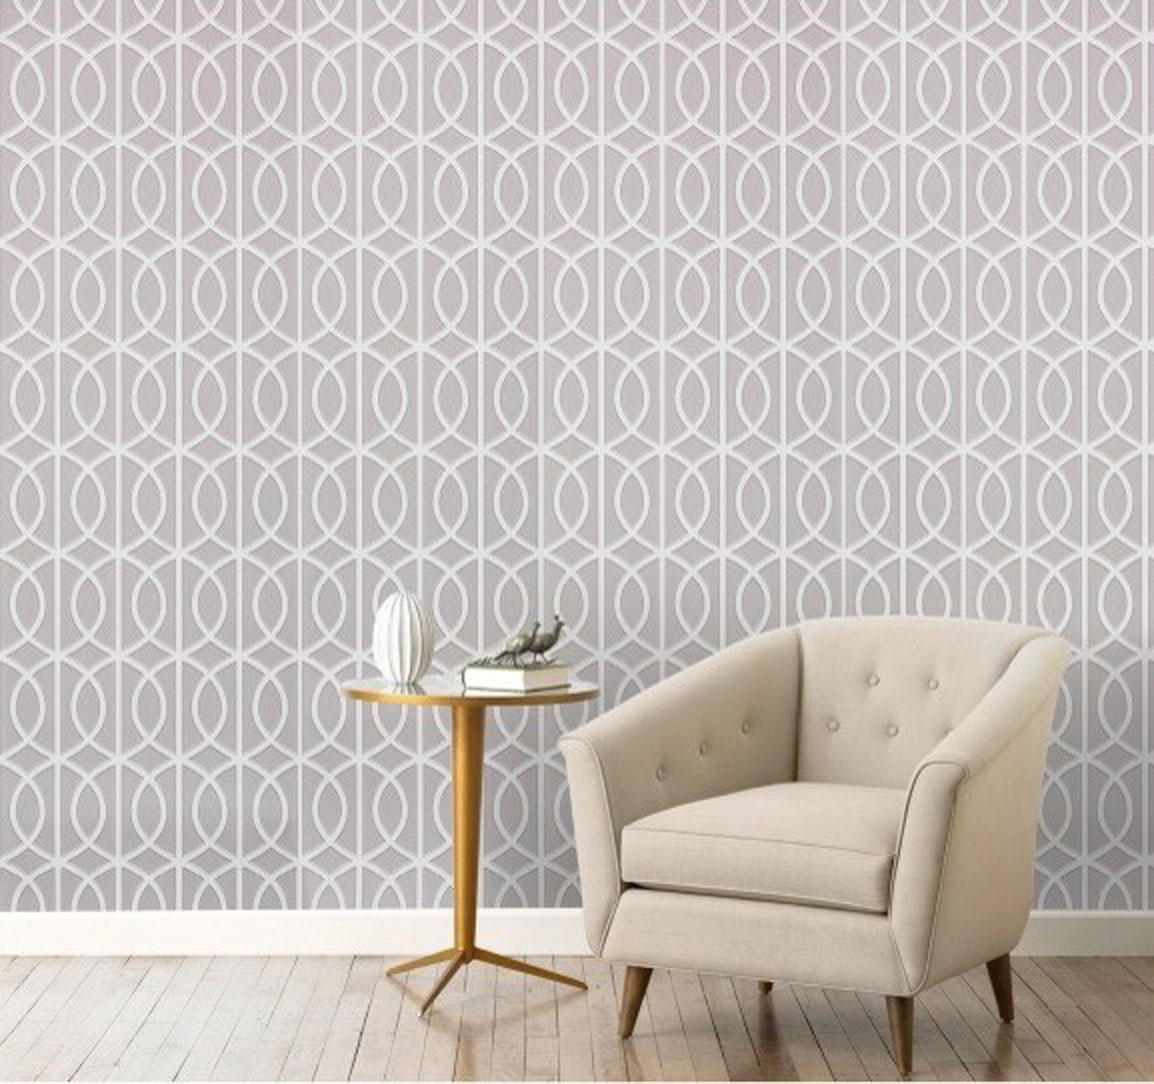 Geometric and graphic wallpaper home trends girls of t o - Wallpaper for walls images ...